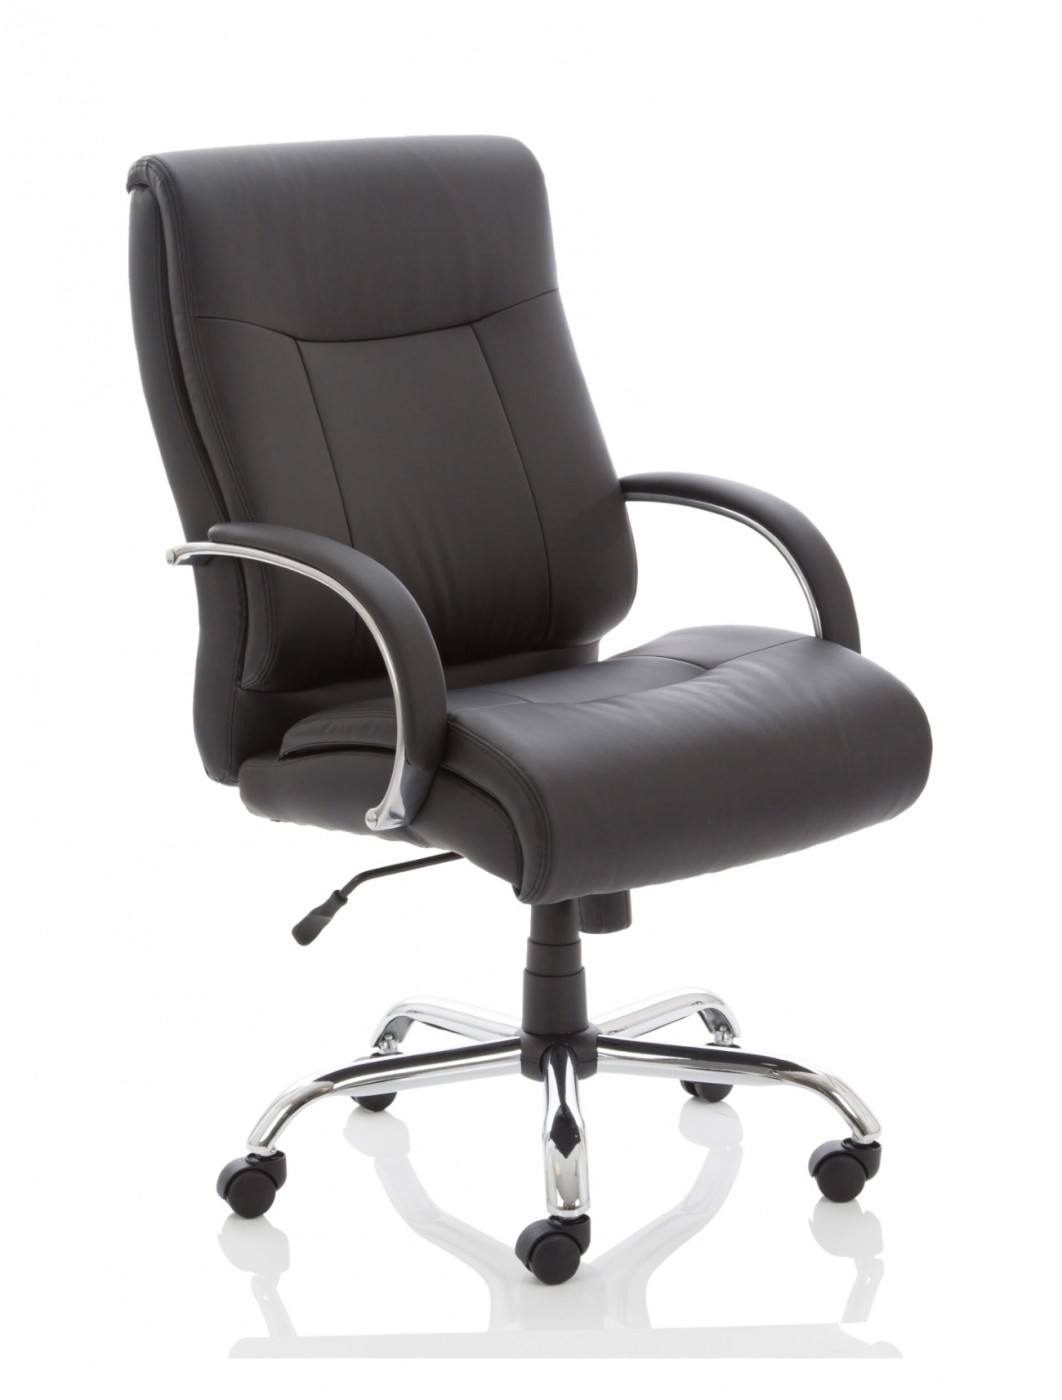 Boardroom Chairs Office Chairs Drayton Hd Super Heavy Duty Executive Office Chair